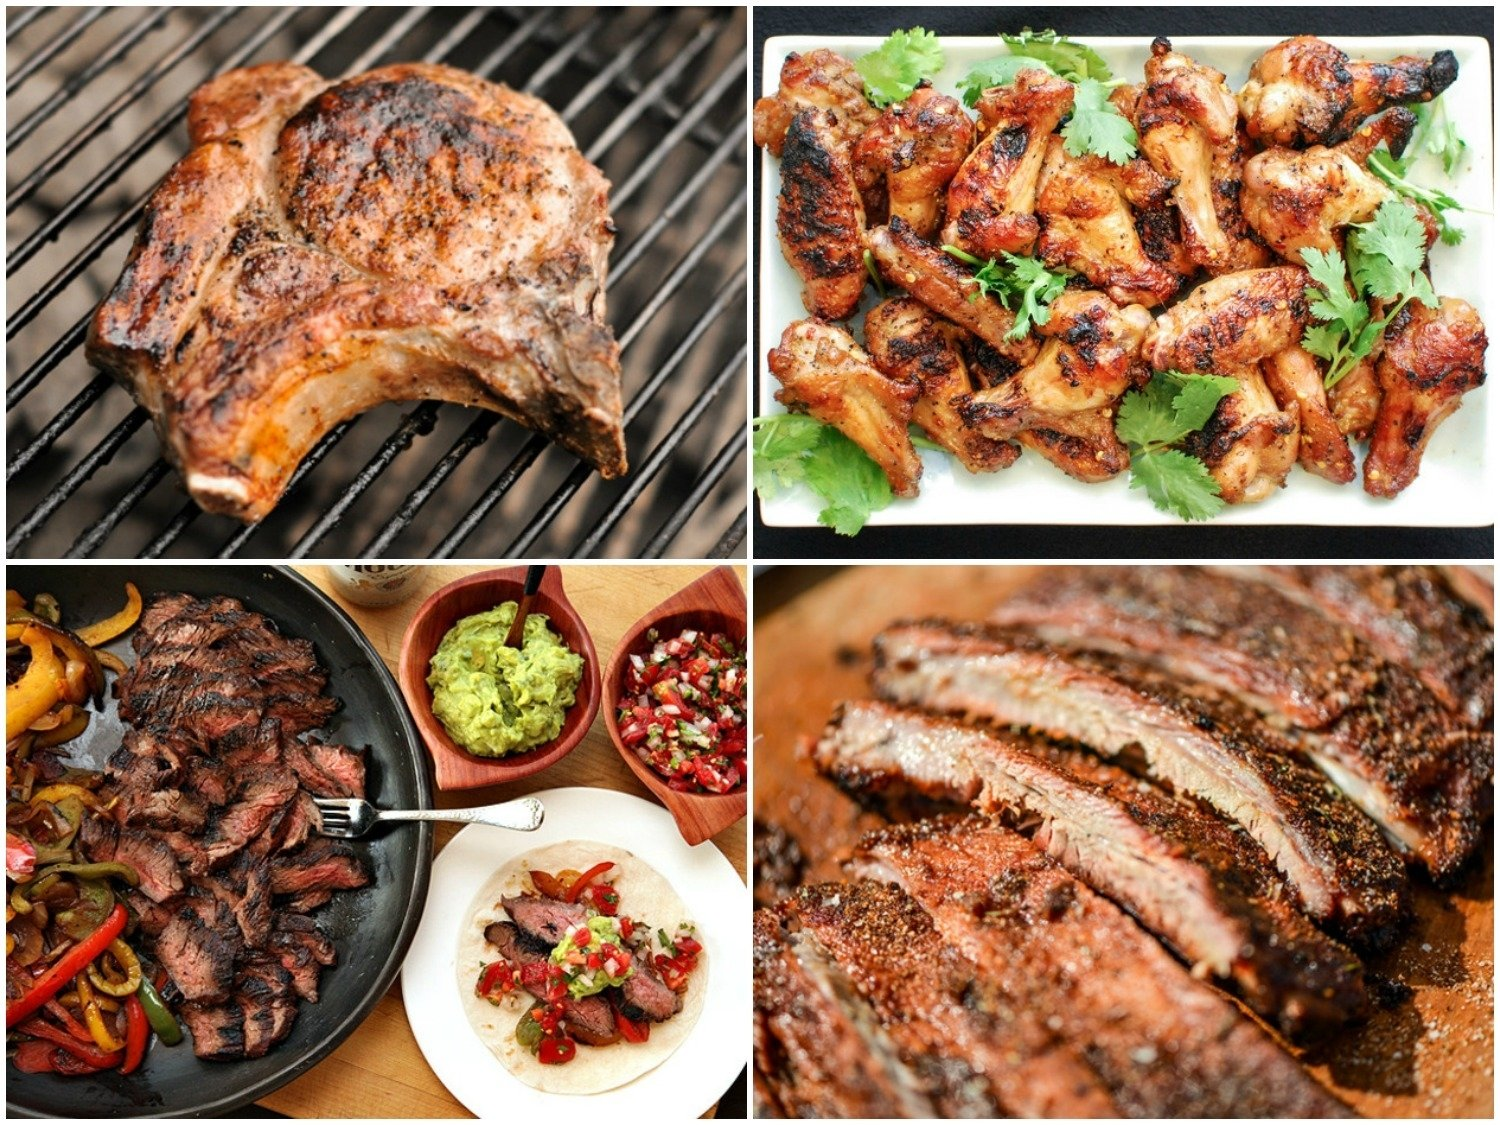 16 crowd-pleasing recipes for your independence day grill | serious eats